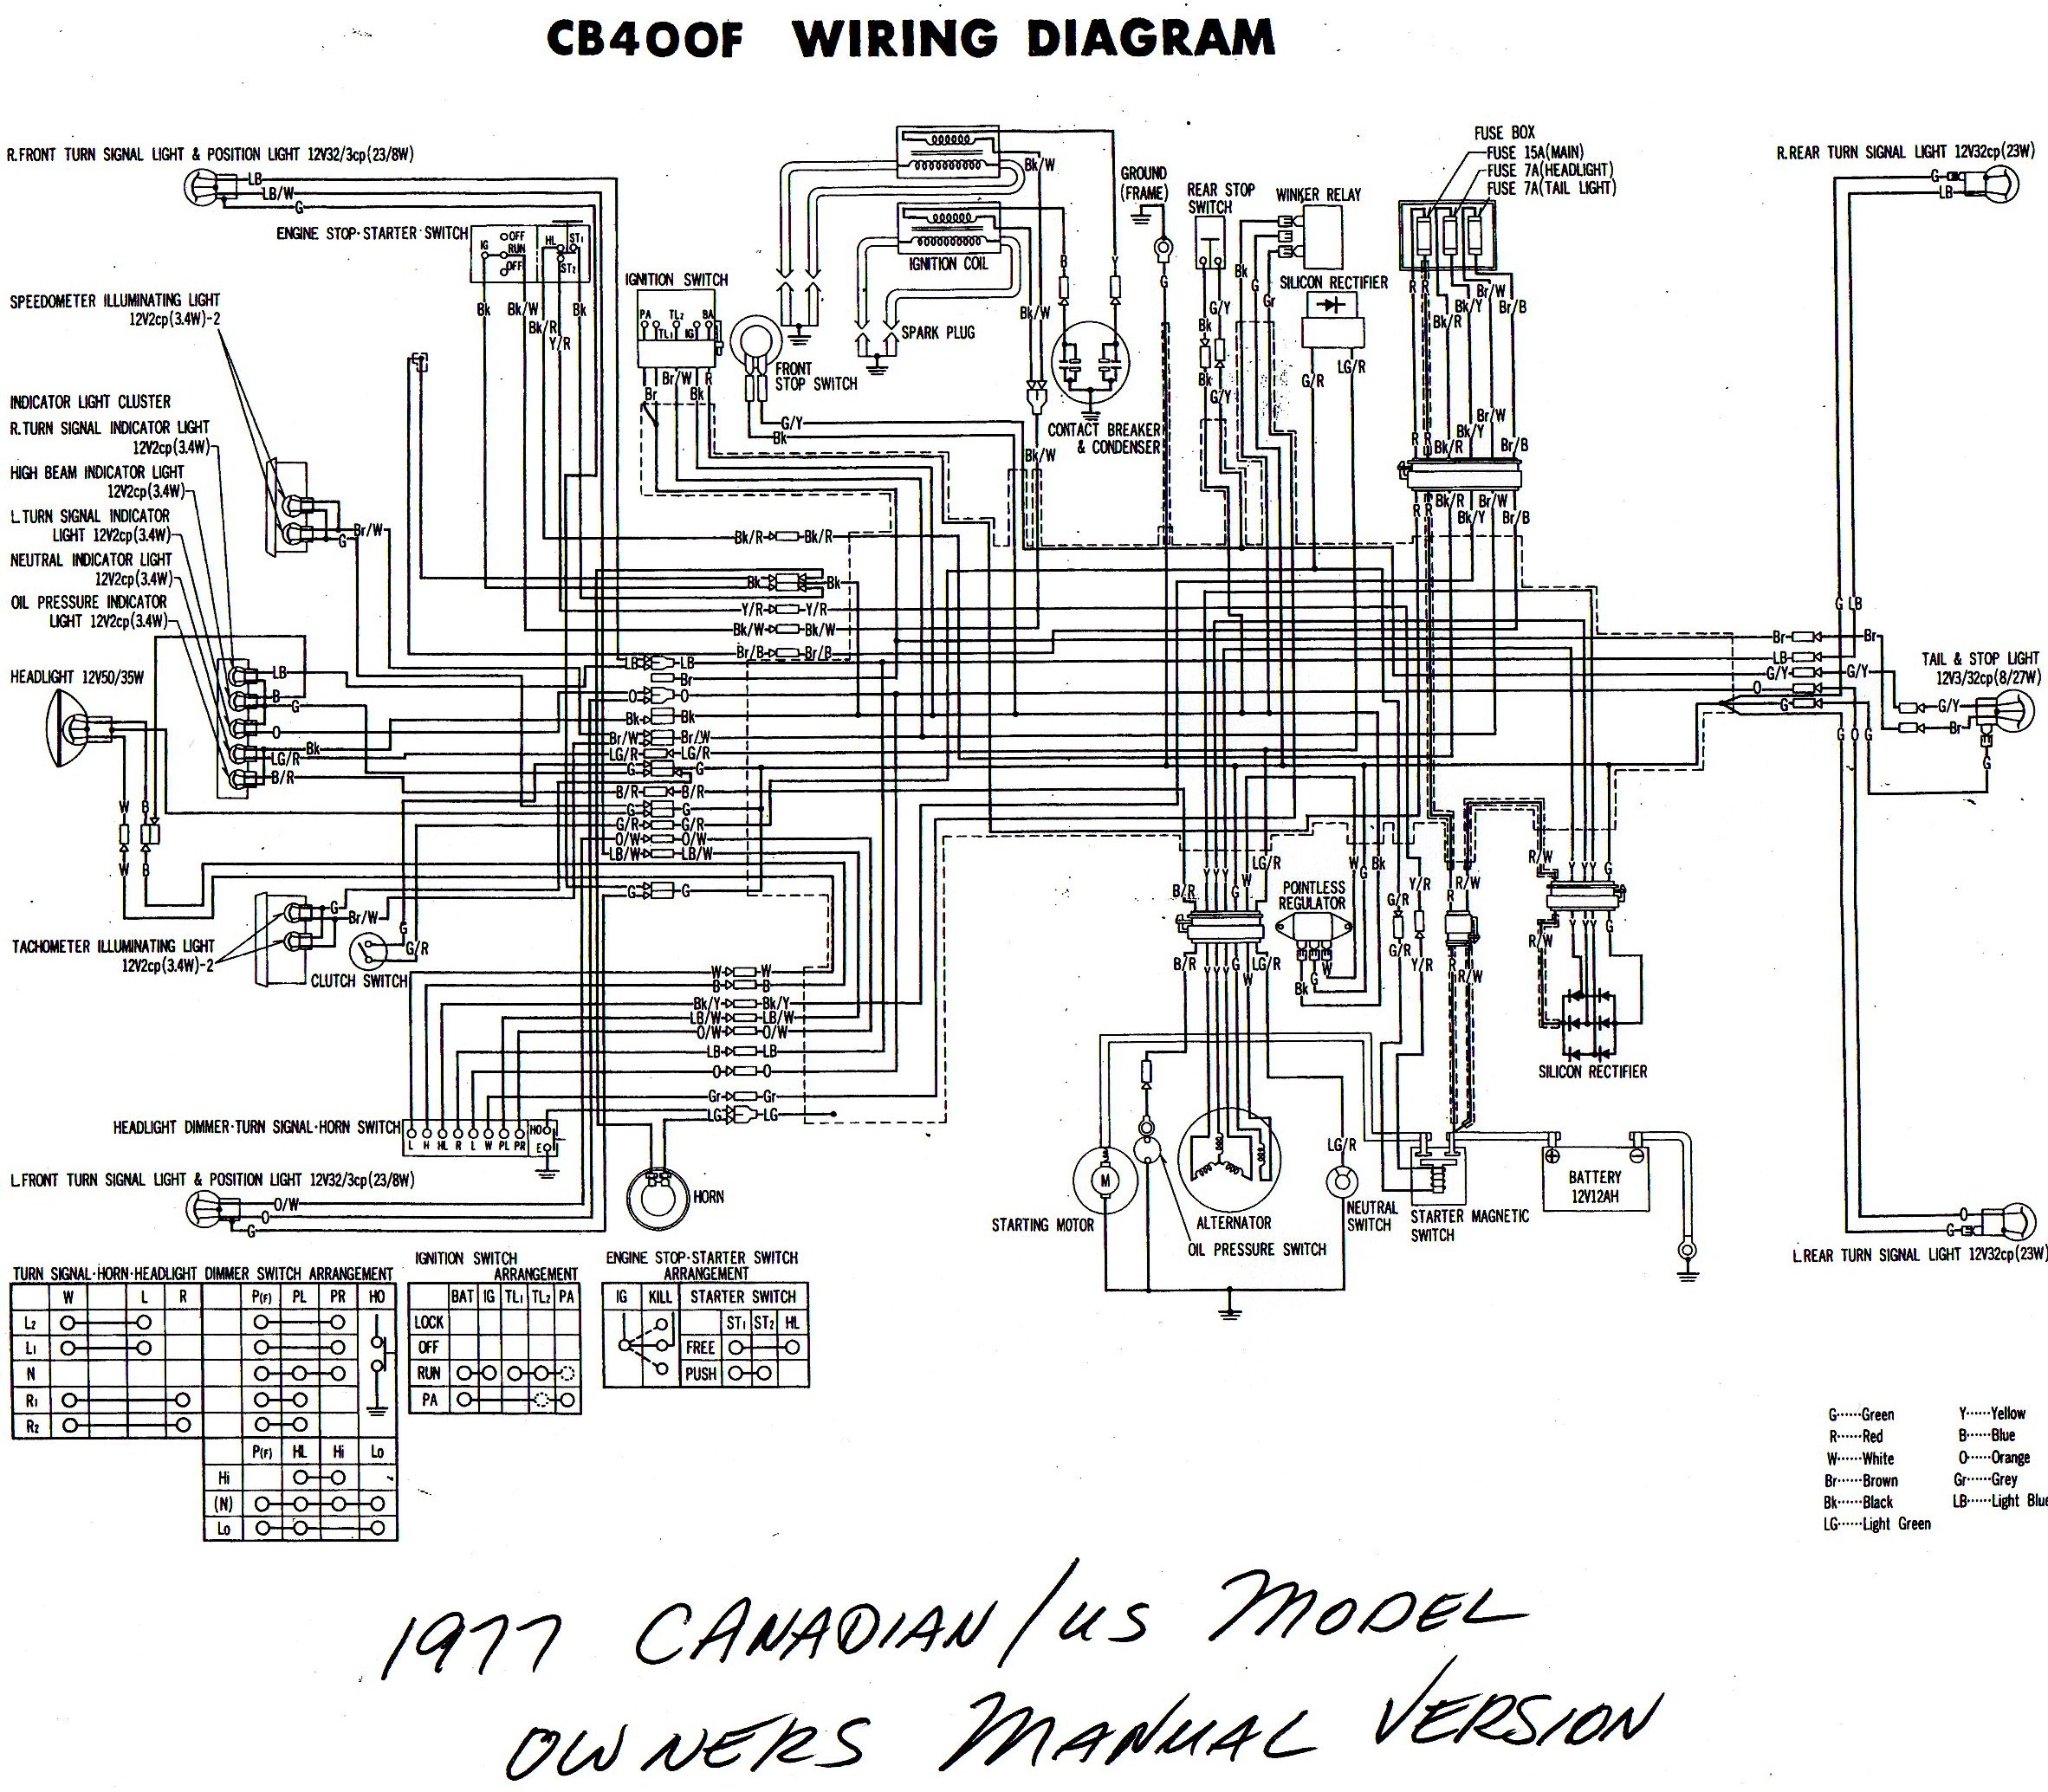 WD40077 cb400 wiring diagram honda c100 wiring diagram \u2022 wiring diagrams  at mifinder.co